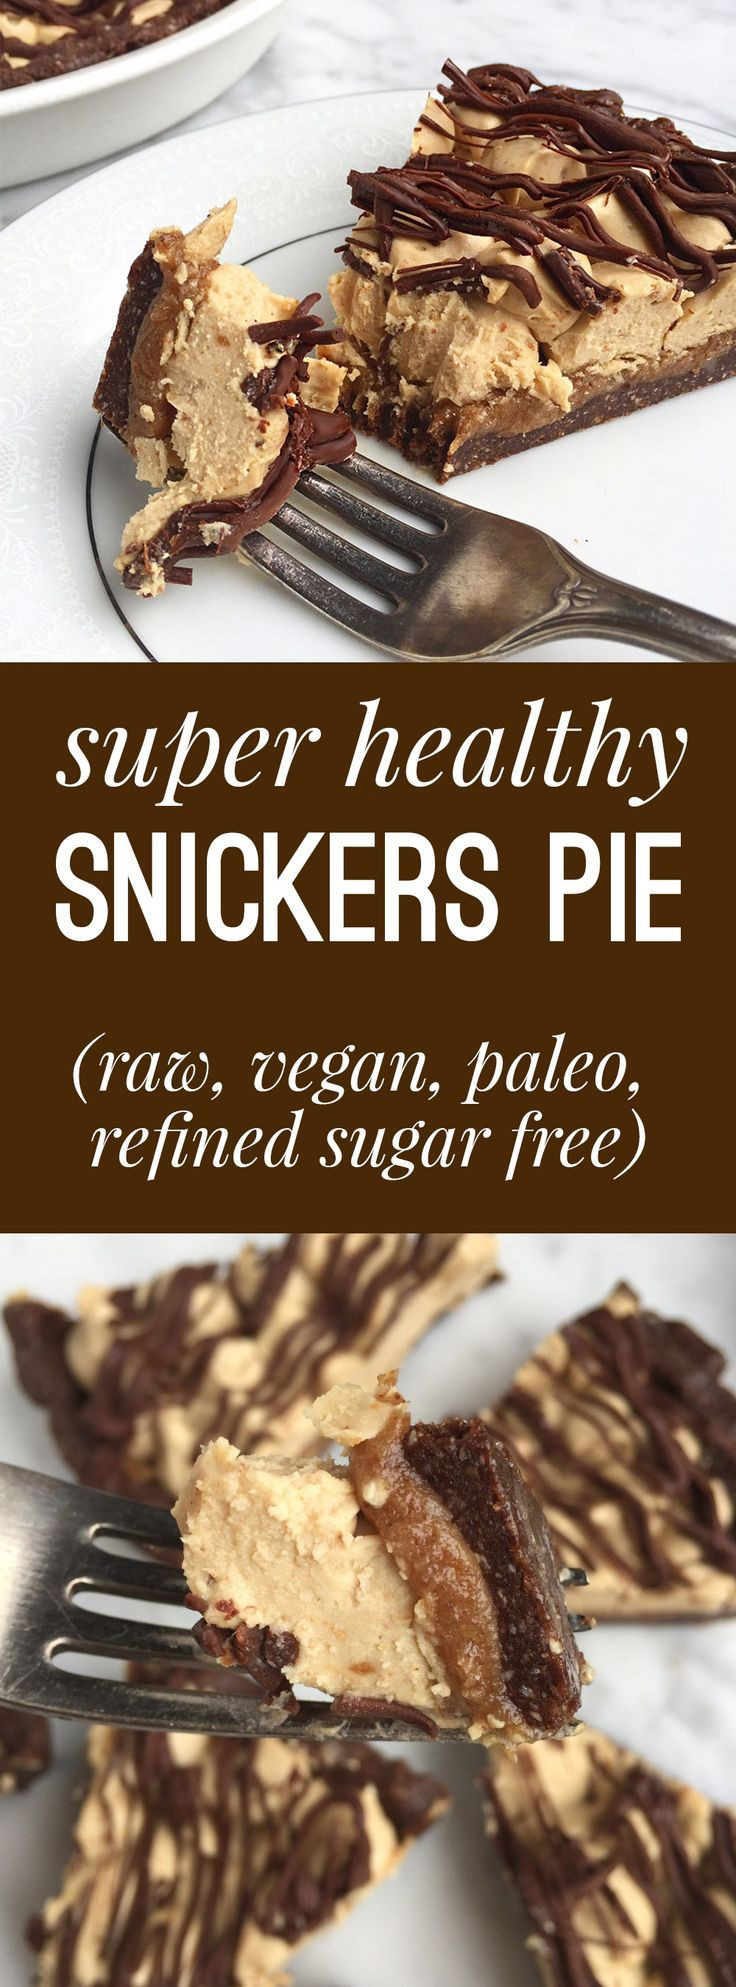 Healthy Vegan Gluten Free Recipes  Healthy Snickers Pie Raw Vegan Gluten Grain Free